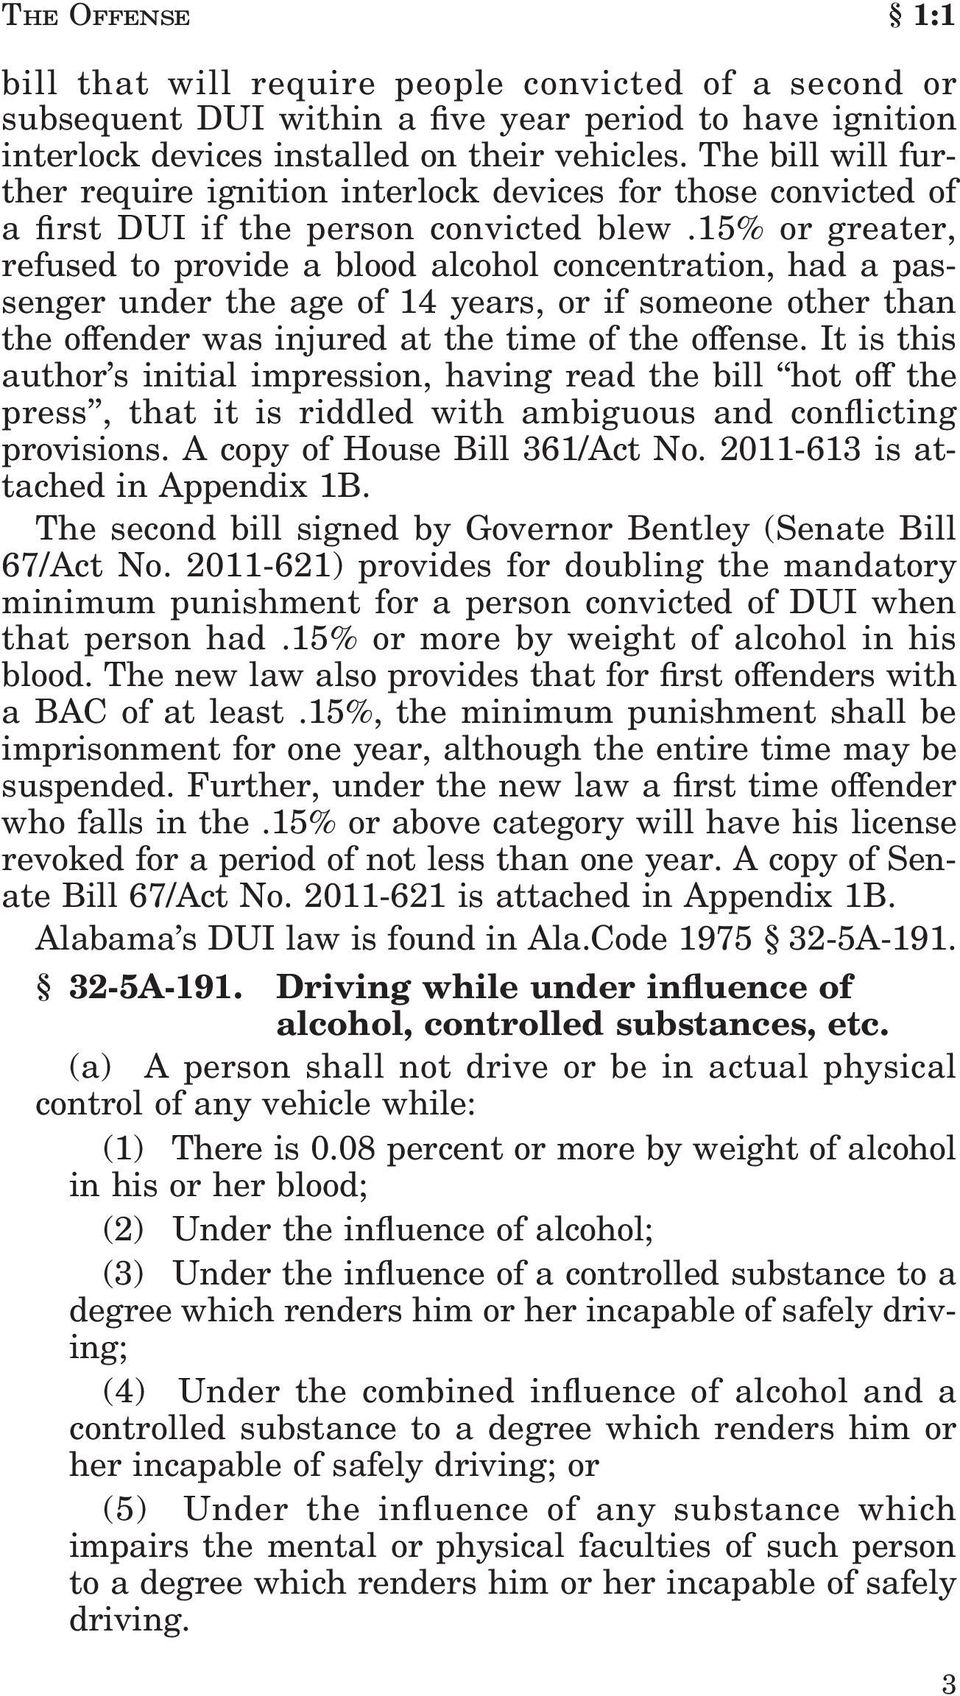 15%orgreater, refused to provide a blood alcohol concentration, had a passenger under the age of 14 years, or if someone other than the o ender was injured at the time of the o ense.